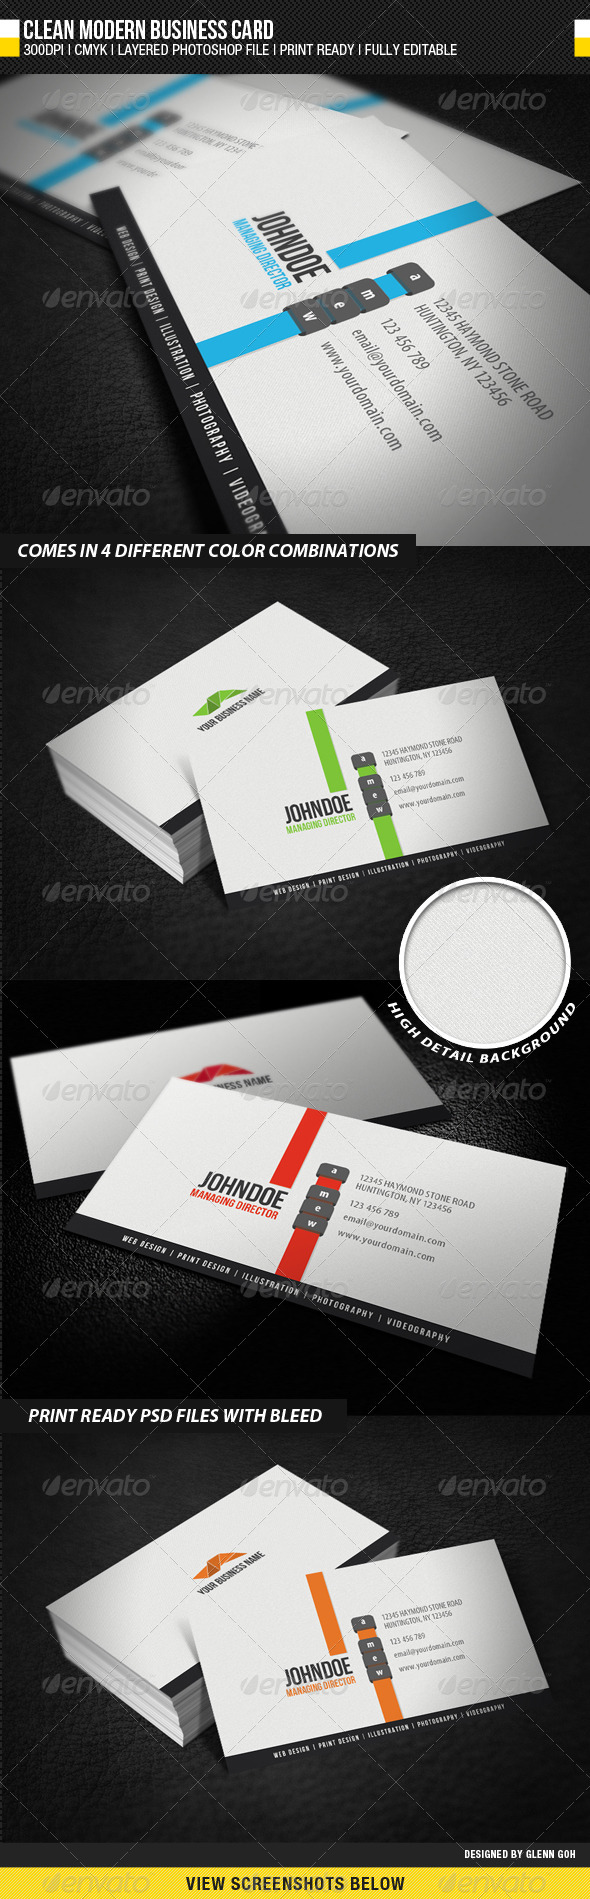 Clean Modern Business Card - Creative Business Cards